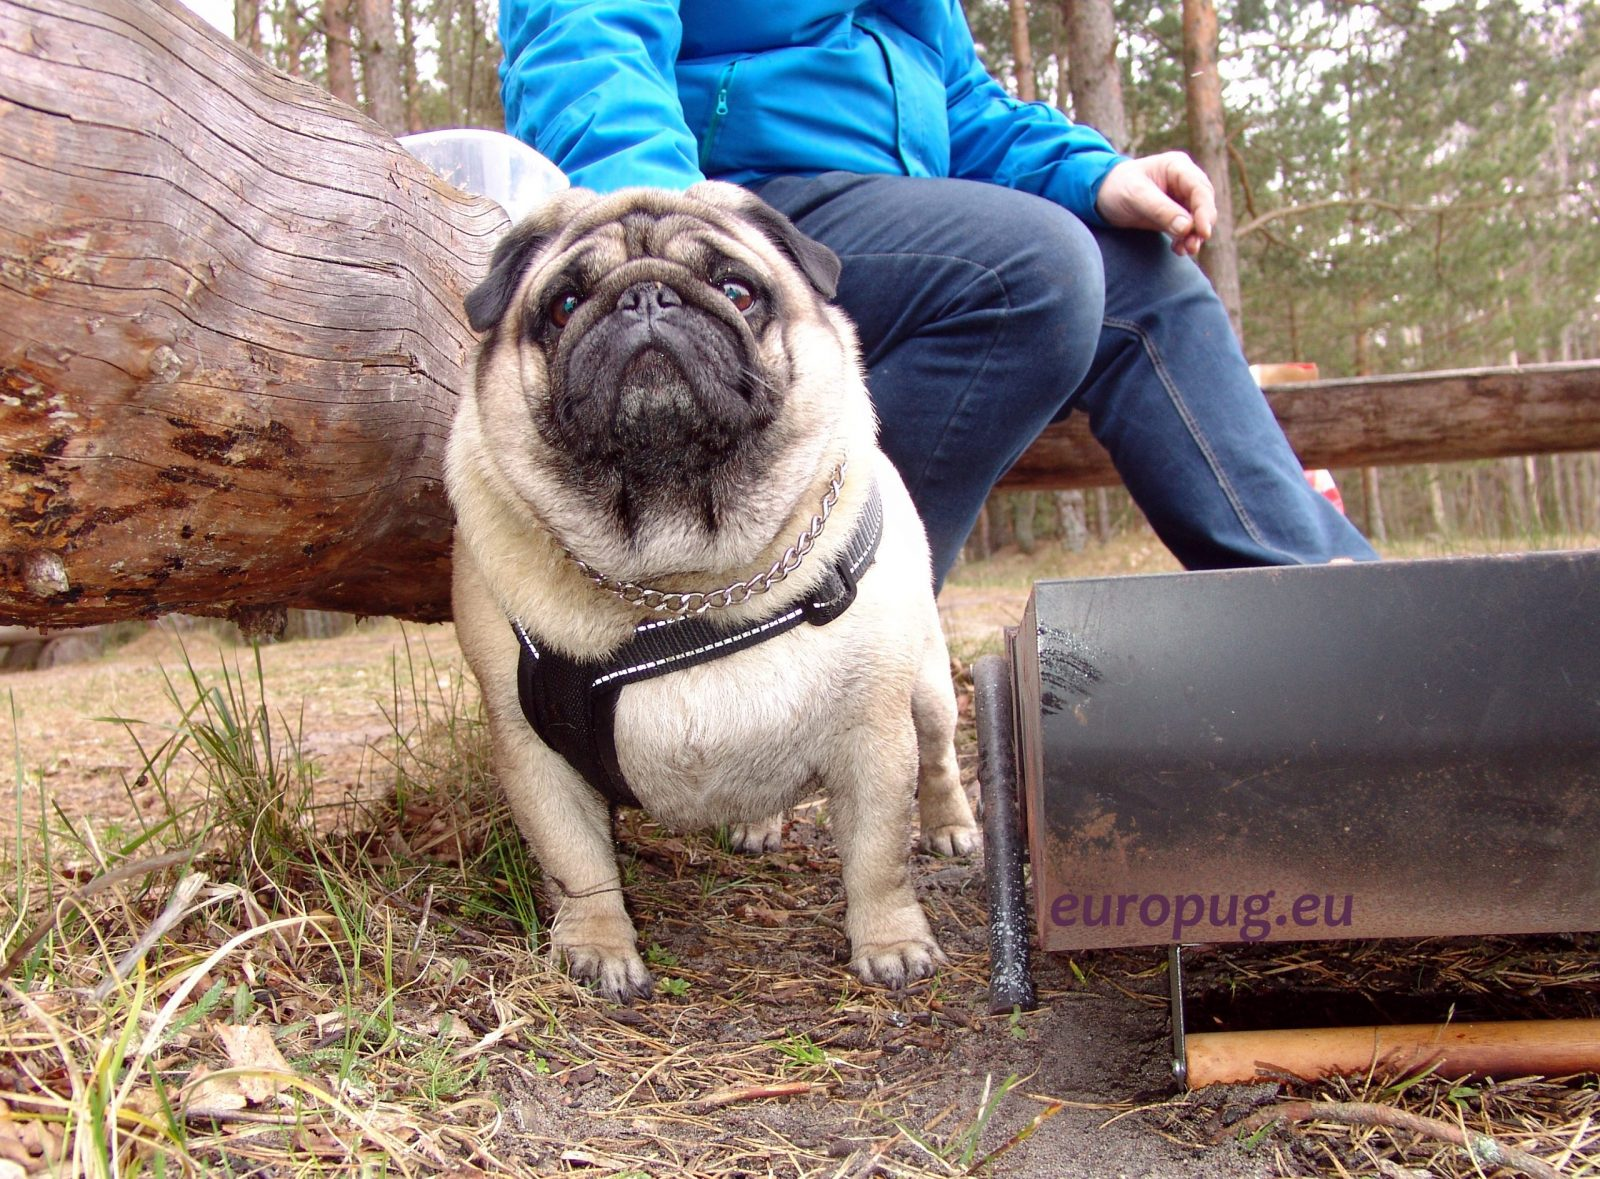 The pug Valli at outdoor